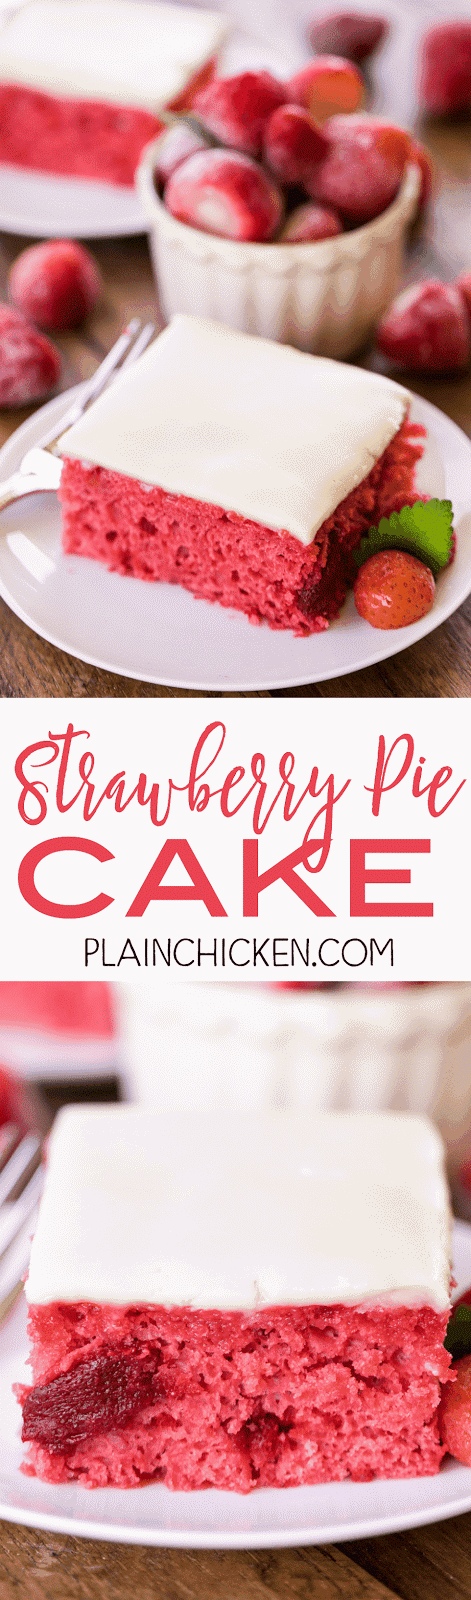 Strawberry Pie Cake - doctored up cake mix with strawberry pie filling and vanilla extract. Topped with a quick homemade white chocolate frosting. This cake is requested for birthdays and potlucks! SO good!